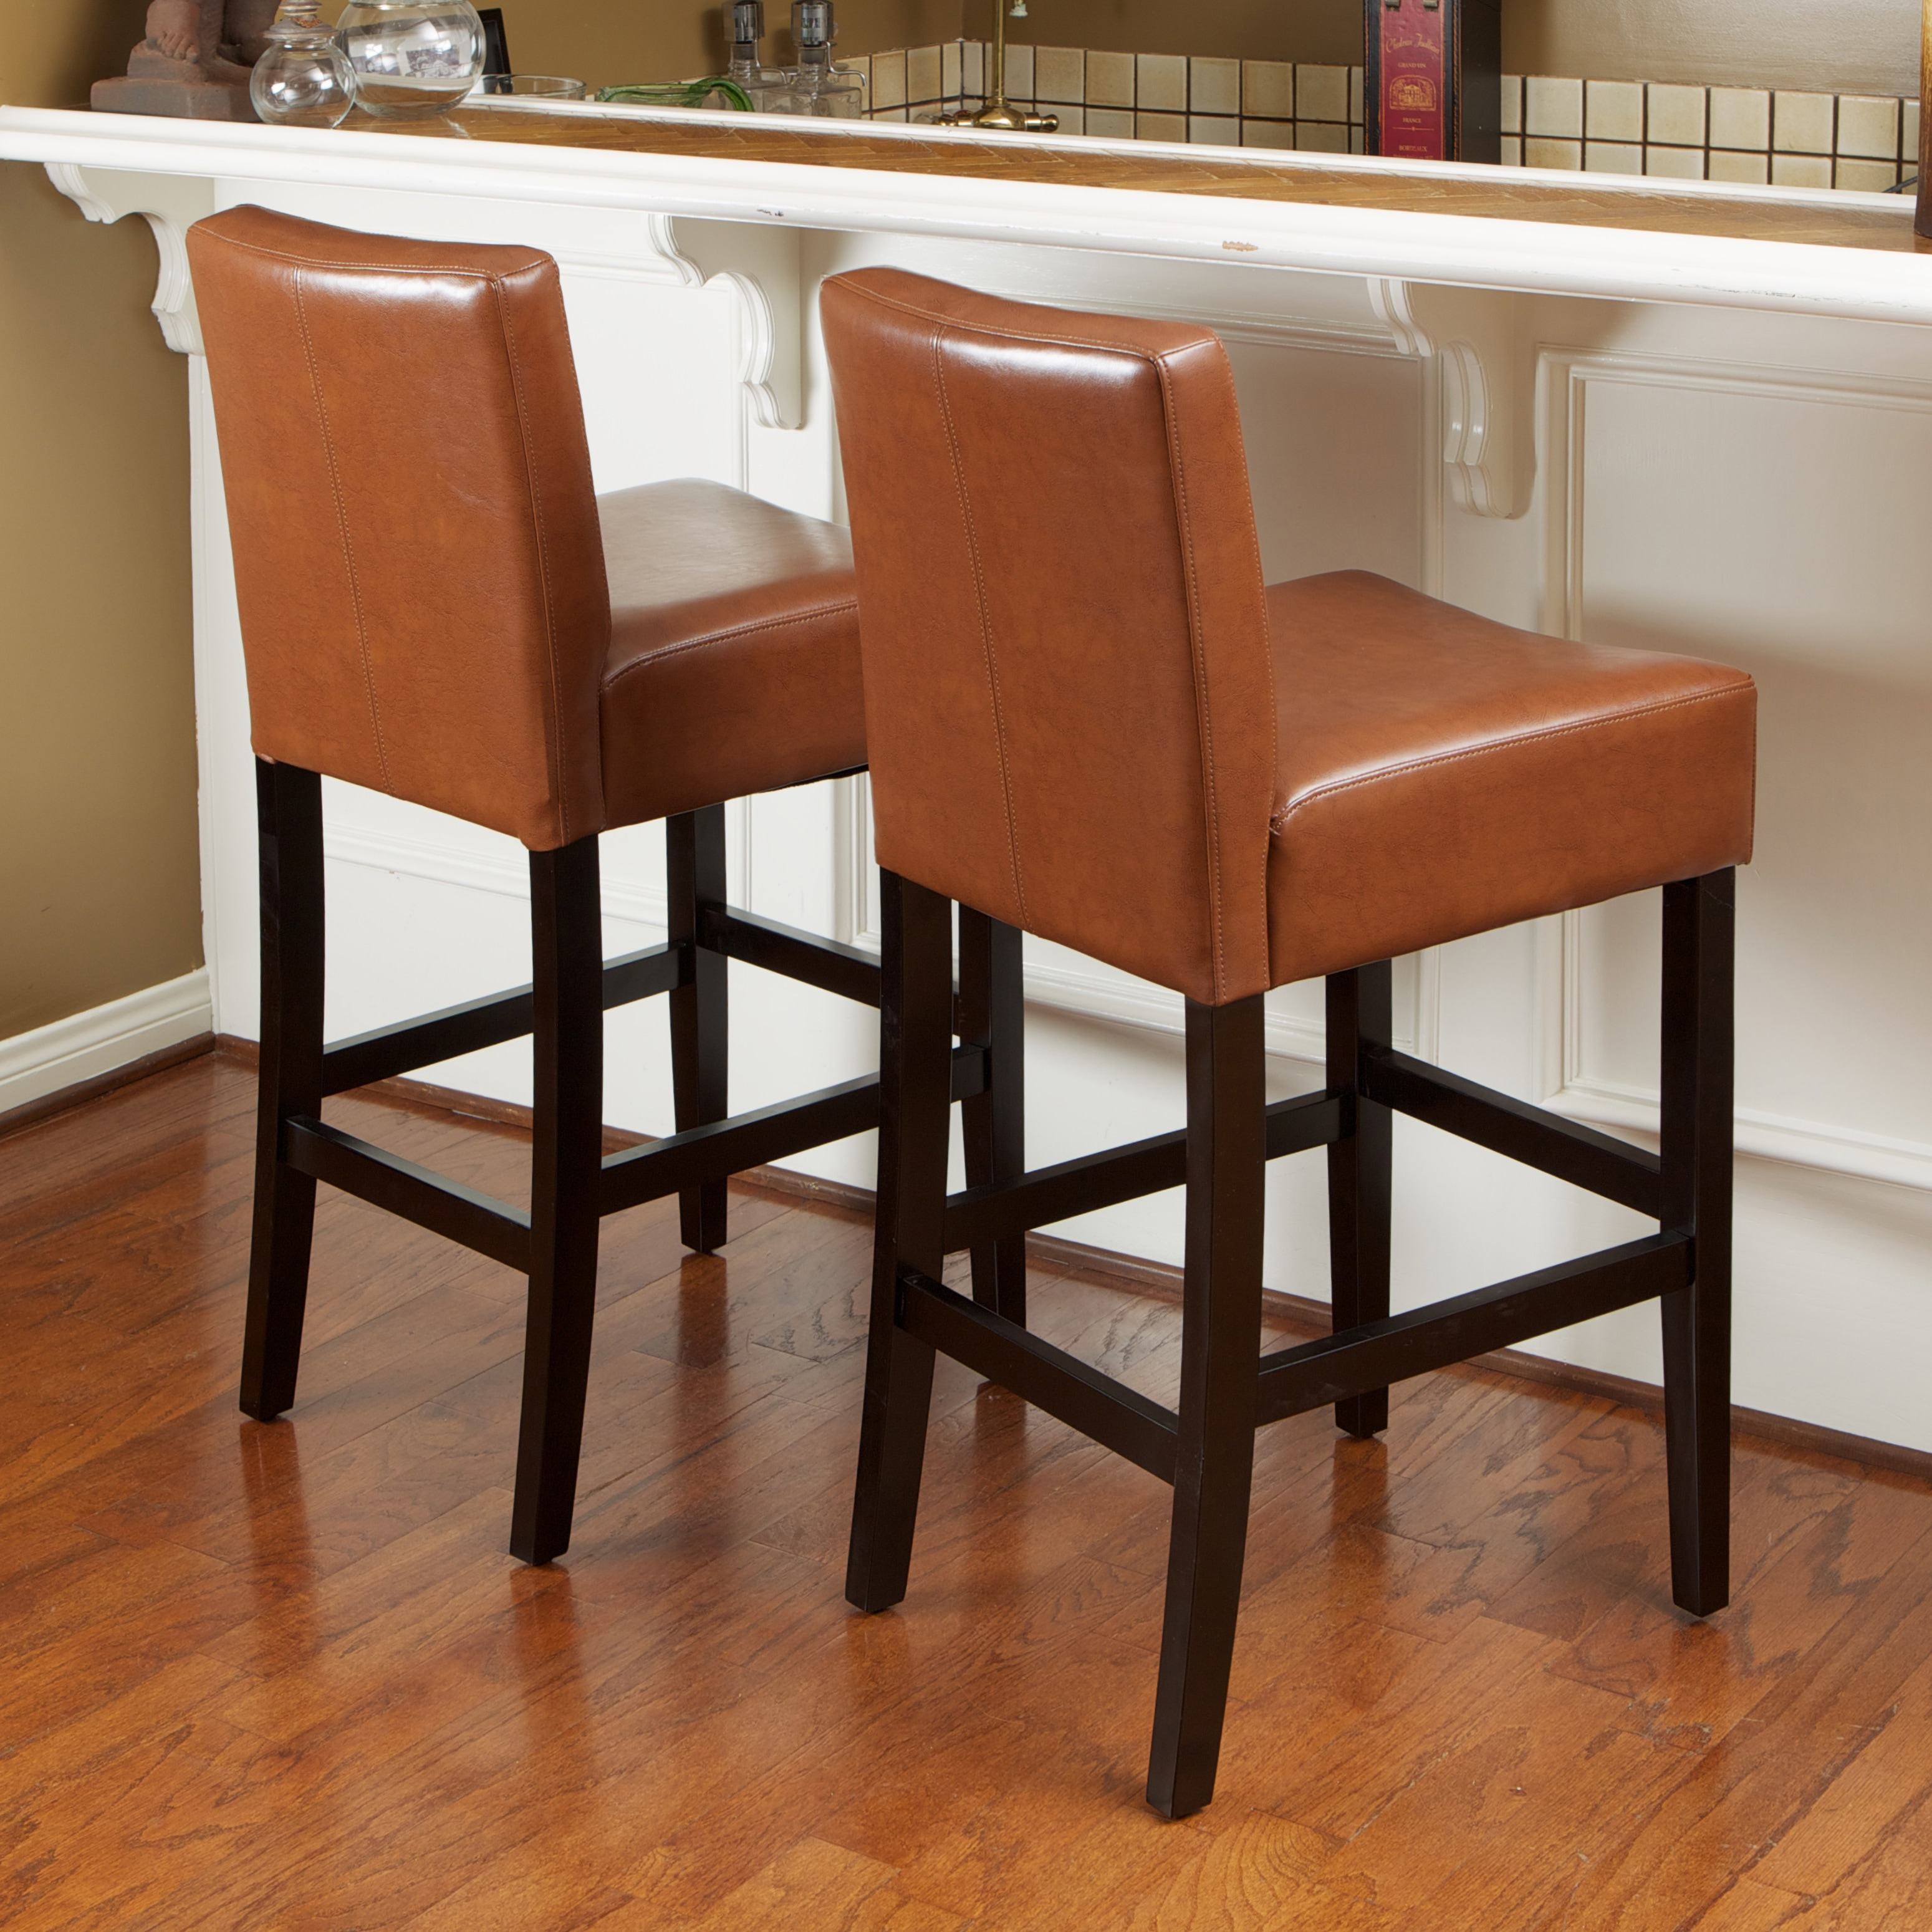 Shop lopez 26 inch hazelnut leather counterstools set of 2 by christopher knight home free shipping today overstock com 7193955